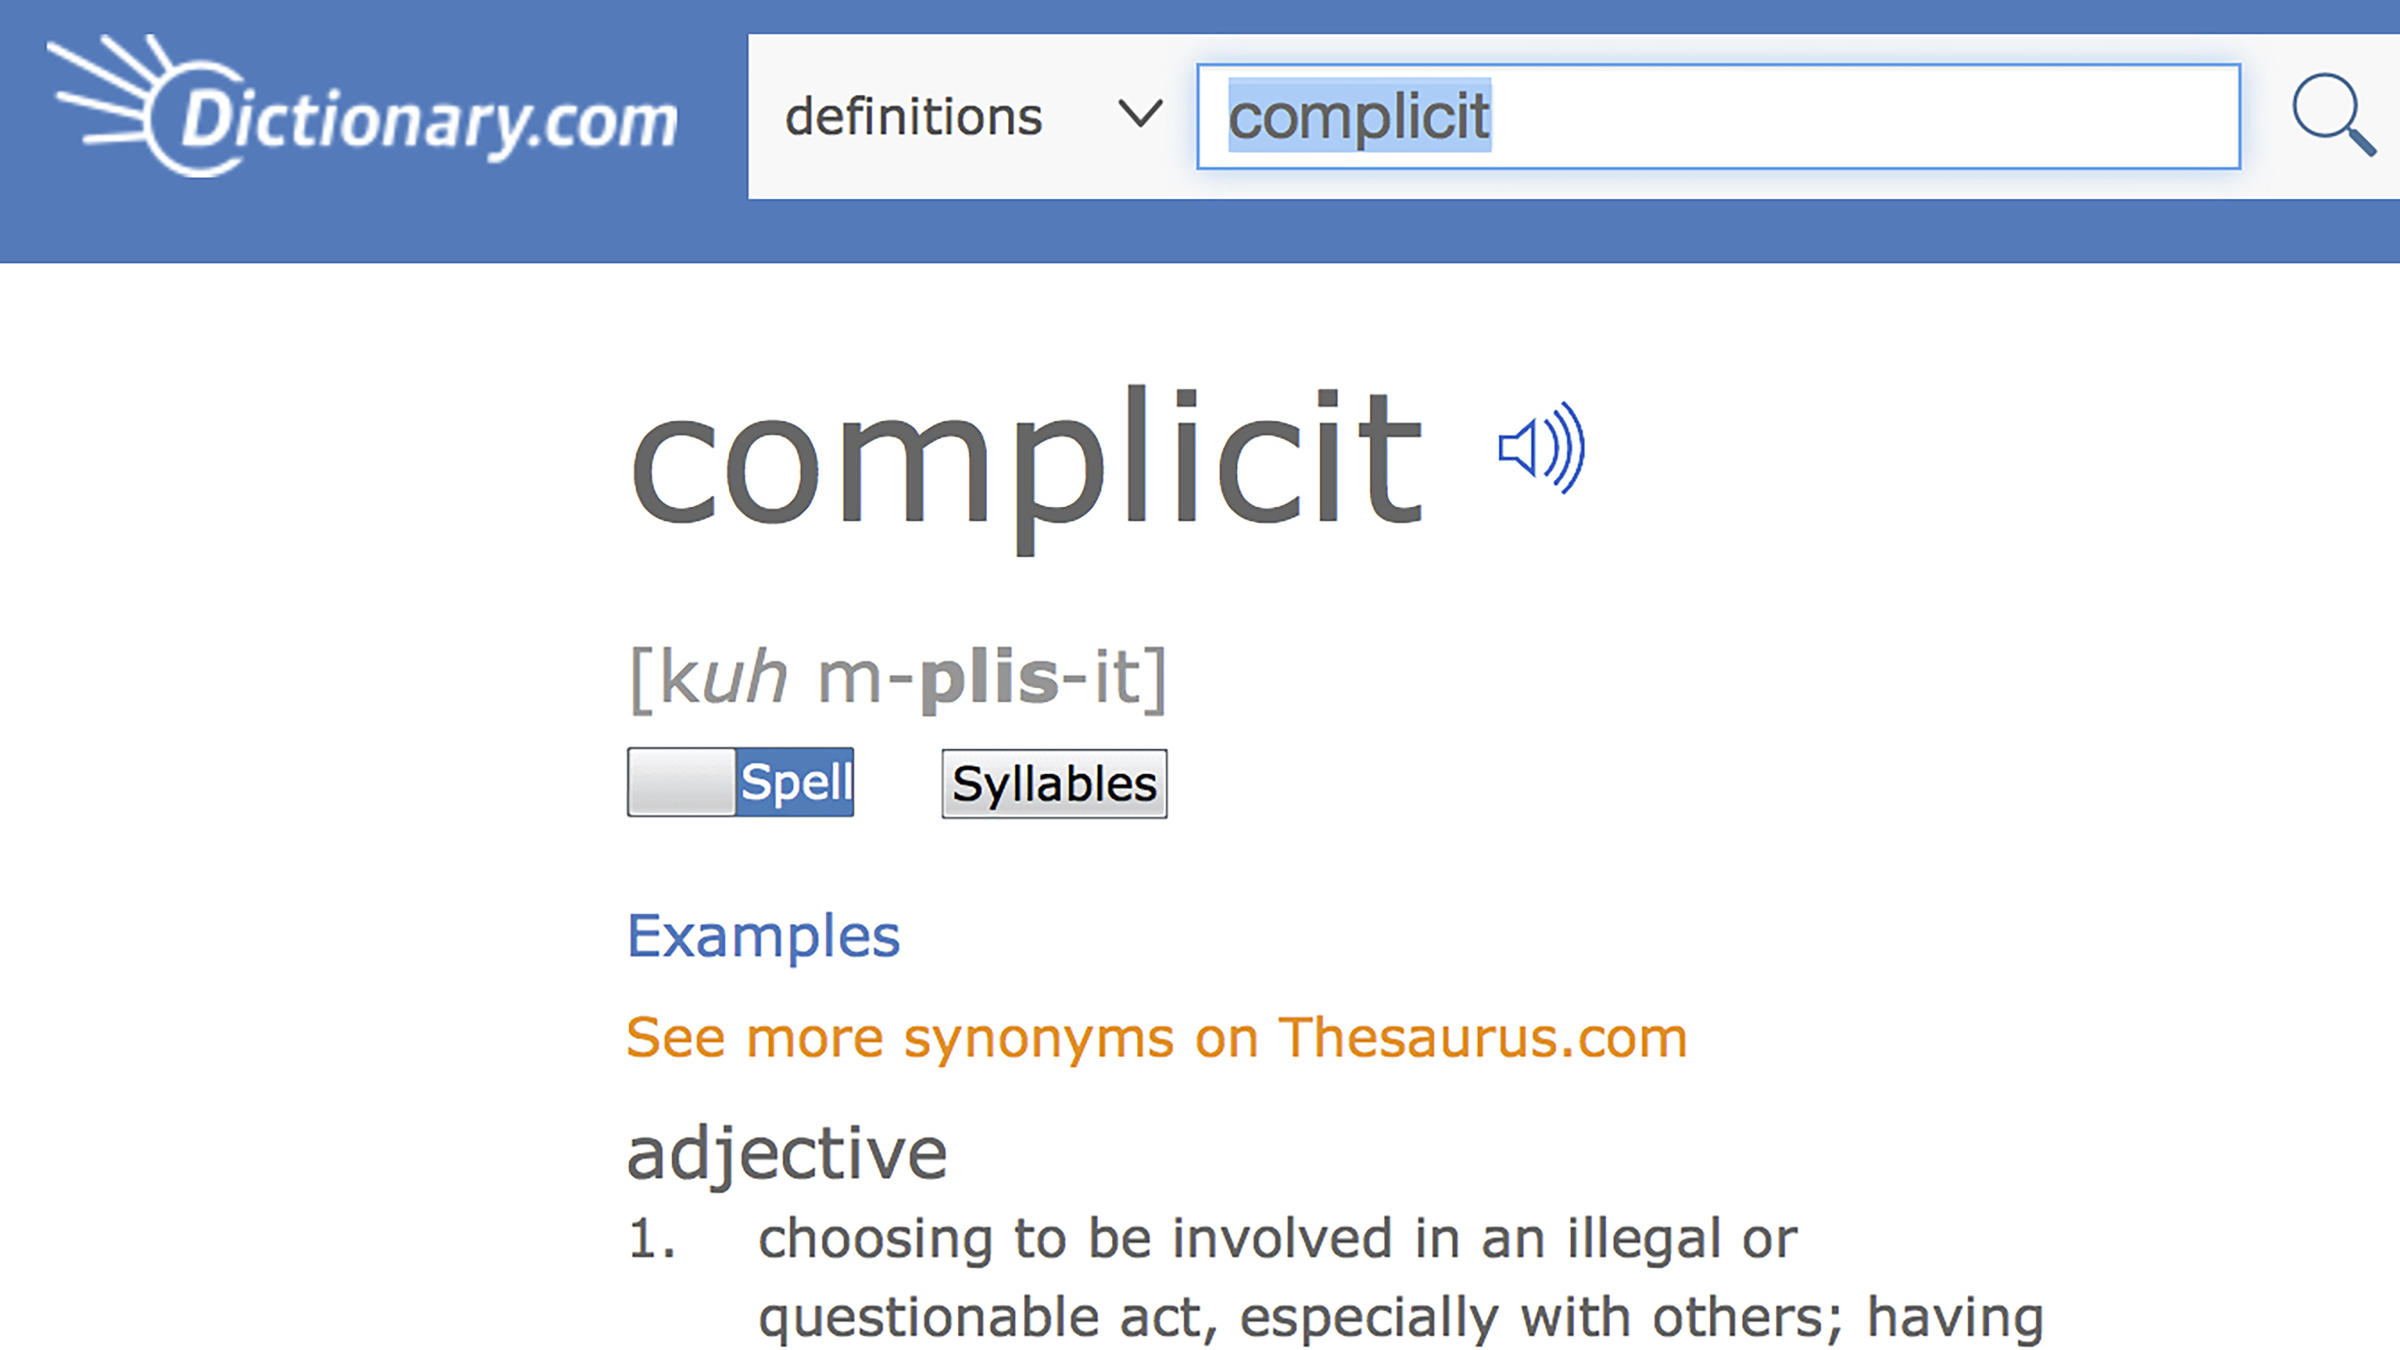 'Complicit' Is The 2017 Word Of The Year, Dictionary.com Says